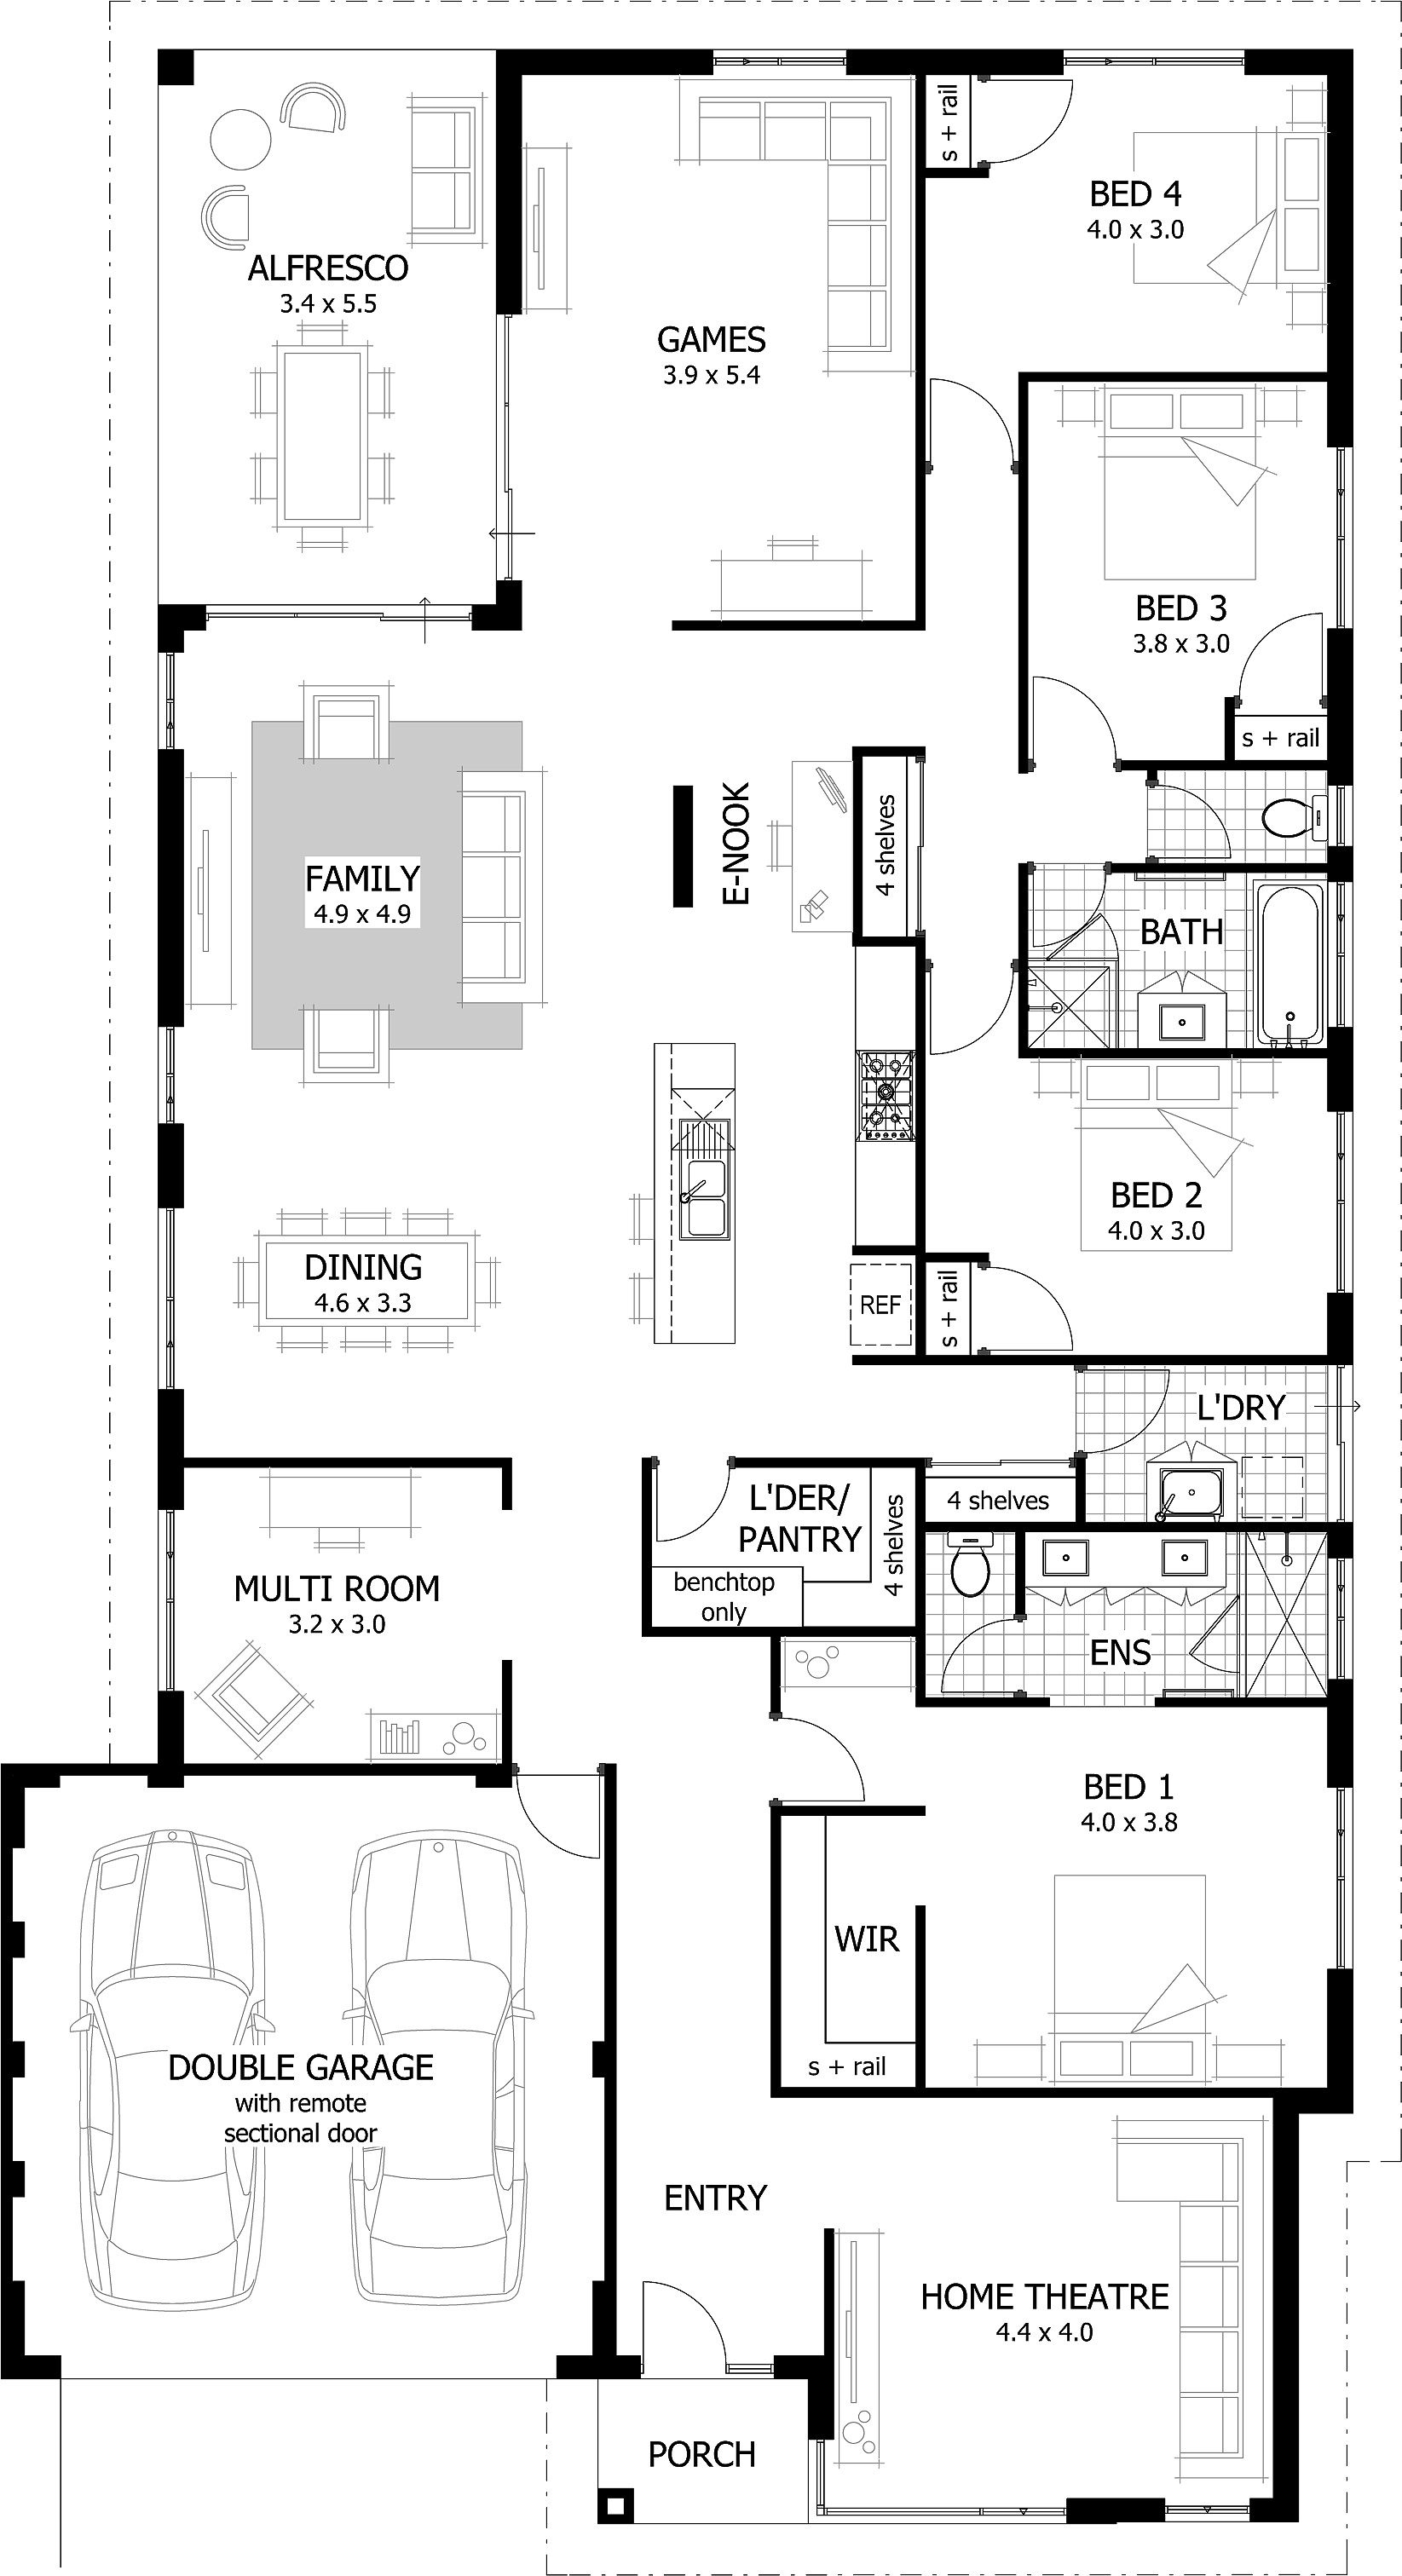 Home Designs Narrow House Plans Bedroom House Plans 4 Bedroom House Plans